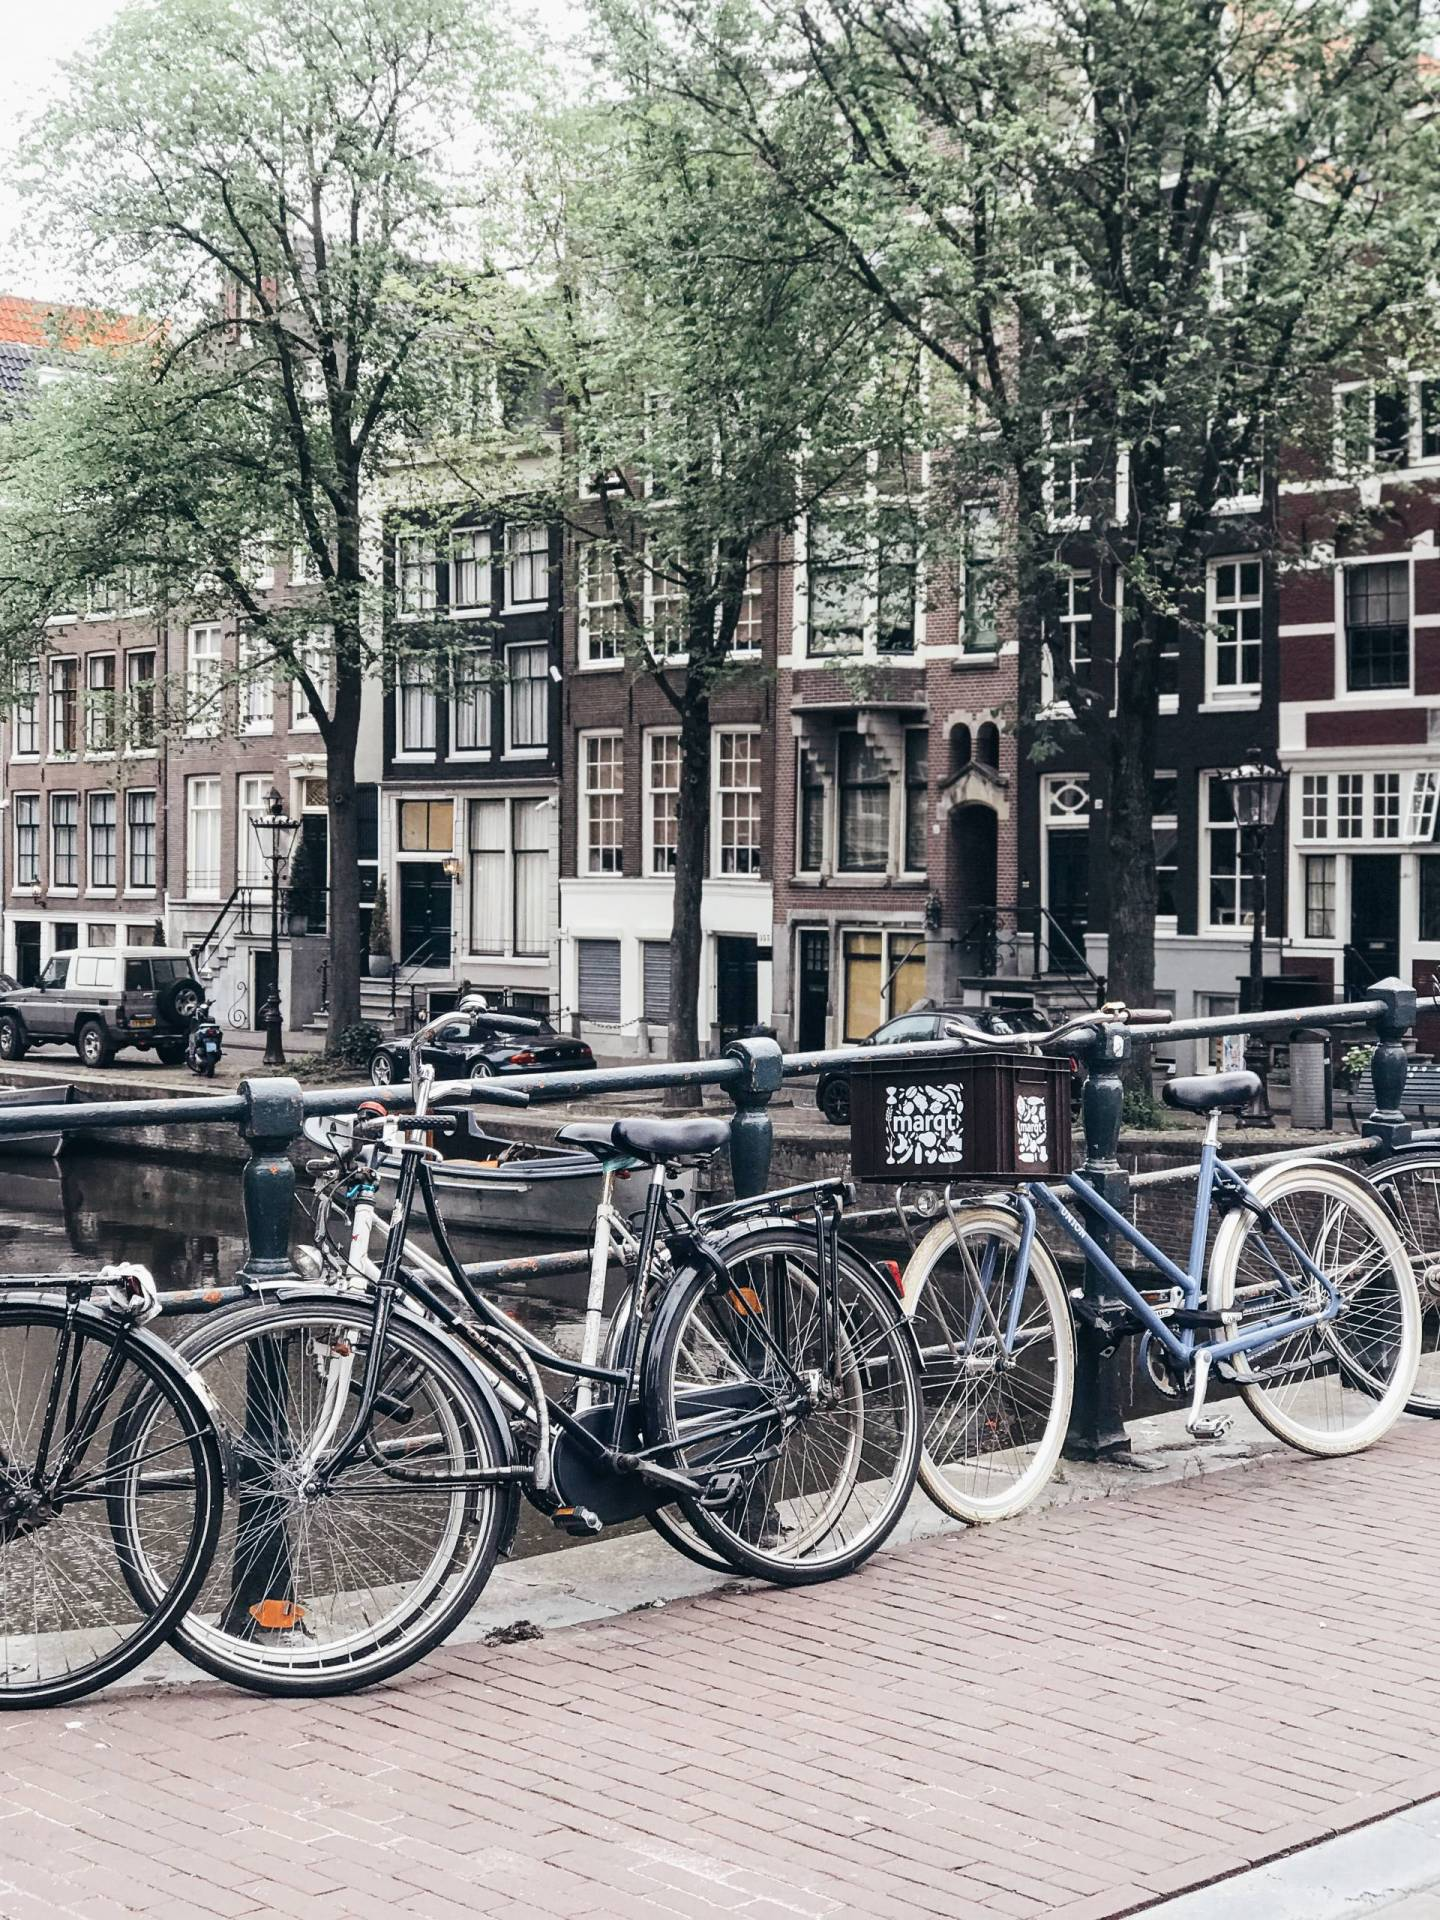 Did you know there are almost twice as many bikes in Amsterdam as there are people? With only 800,000 residents, there are over 1.2M bikes! It's a place unlike any I've ever visited before and one of my favorite trips we've ever taken. Click through for more of what we did, where we ate, and where we stayed during our visit.